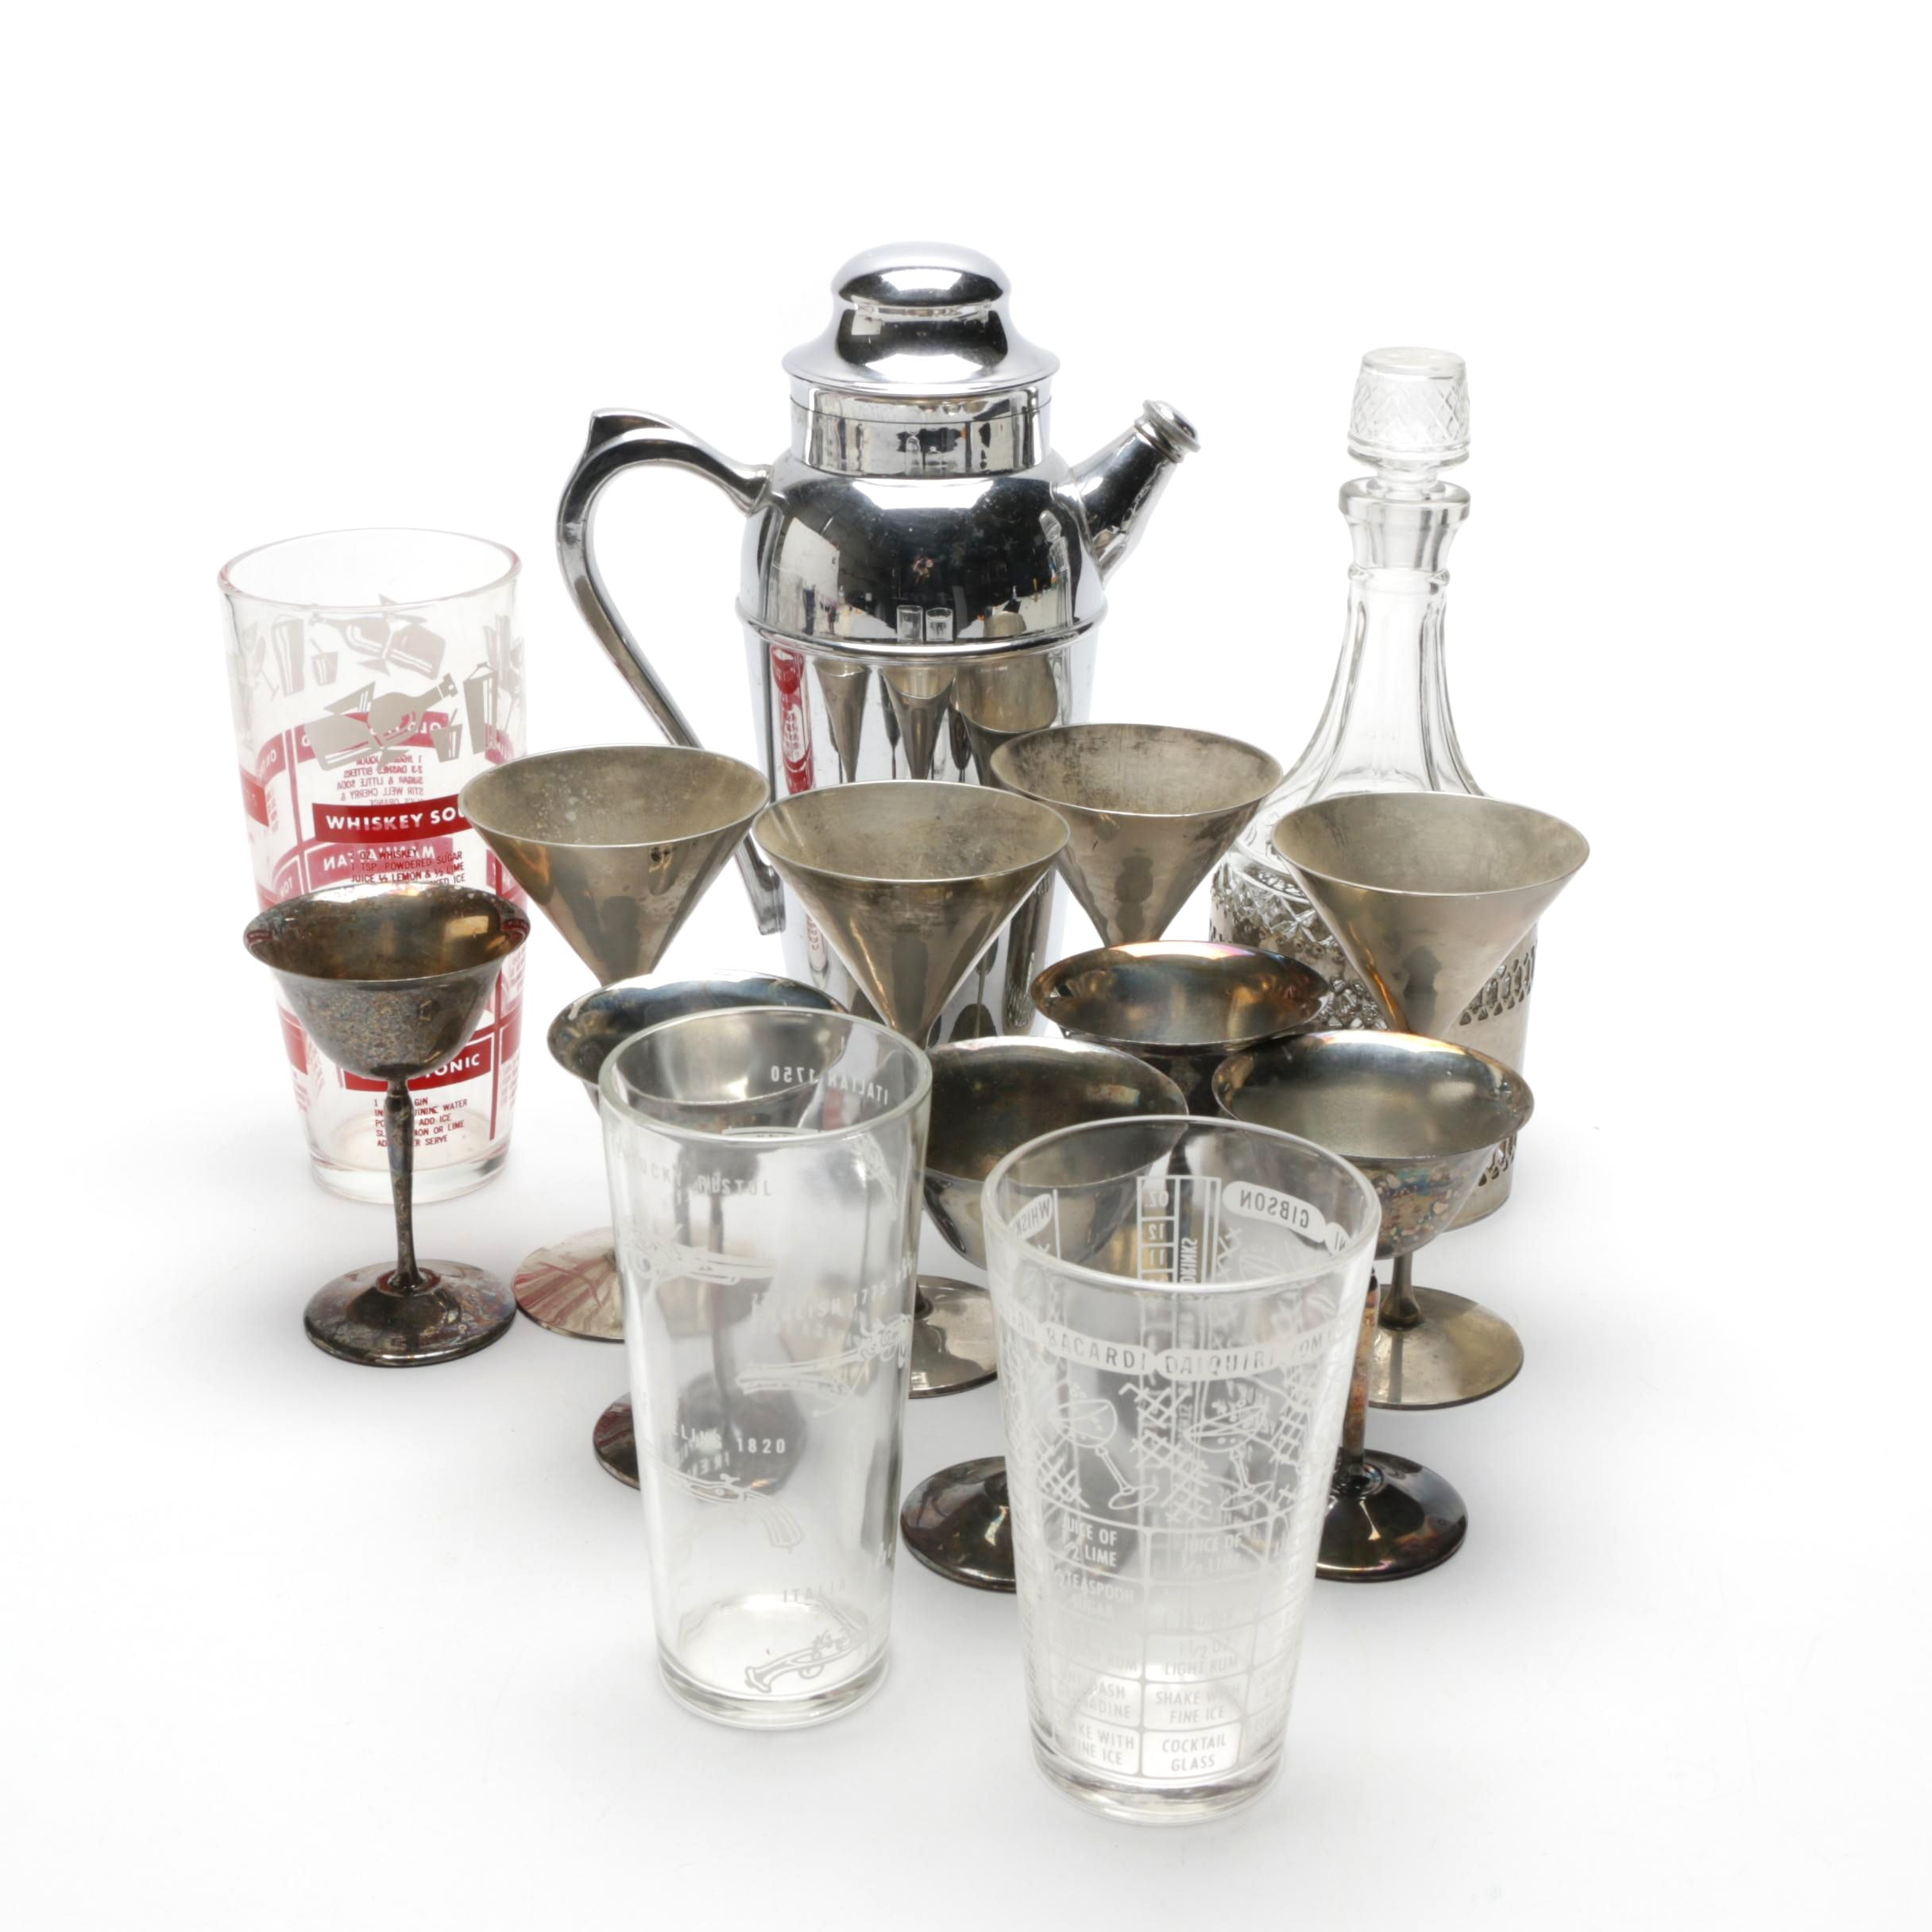 Silver Plate Martini Shaker, Decanter, Martini Glasses and Mixing Glasses